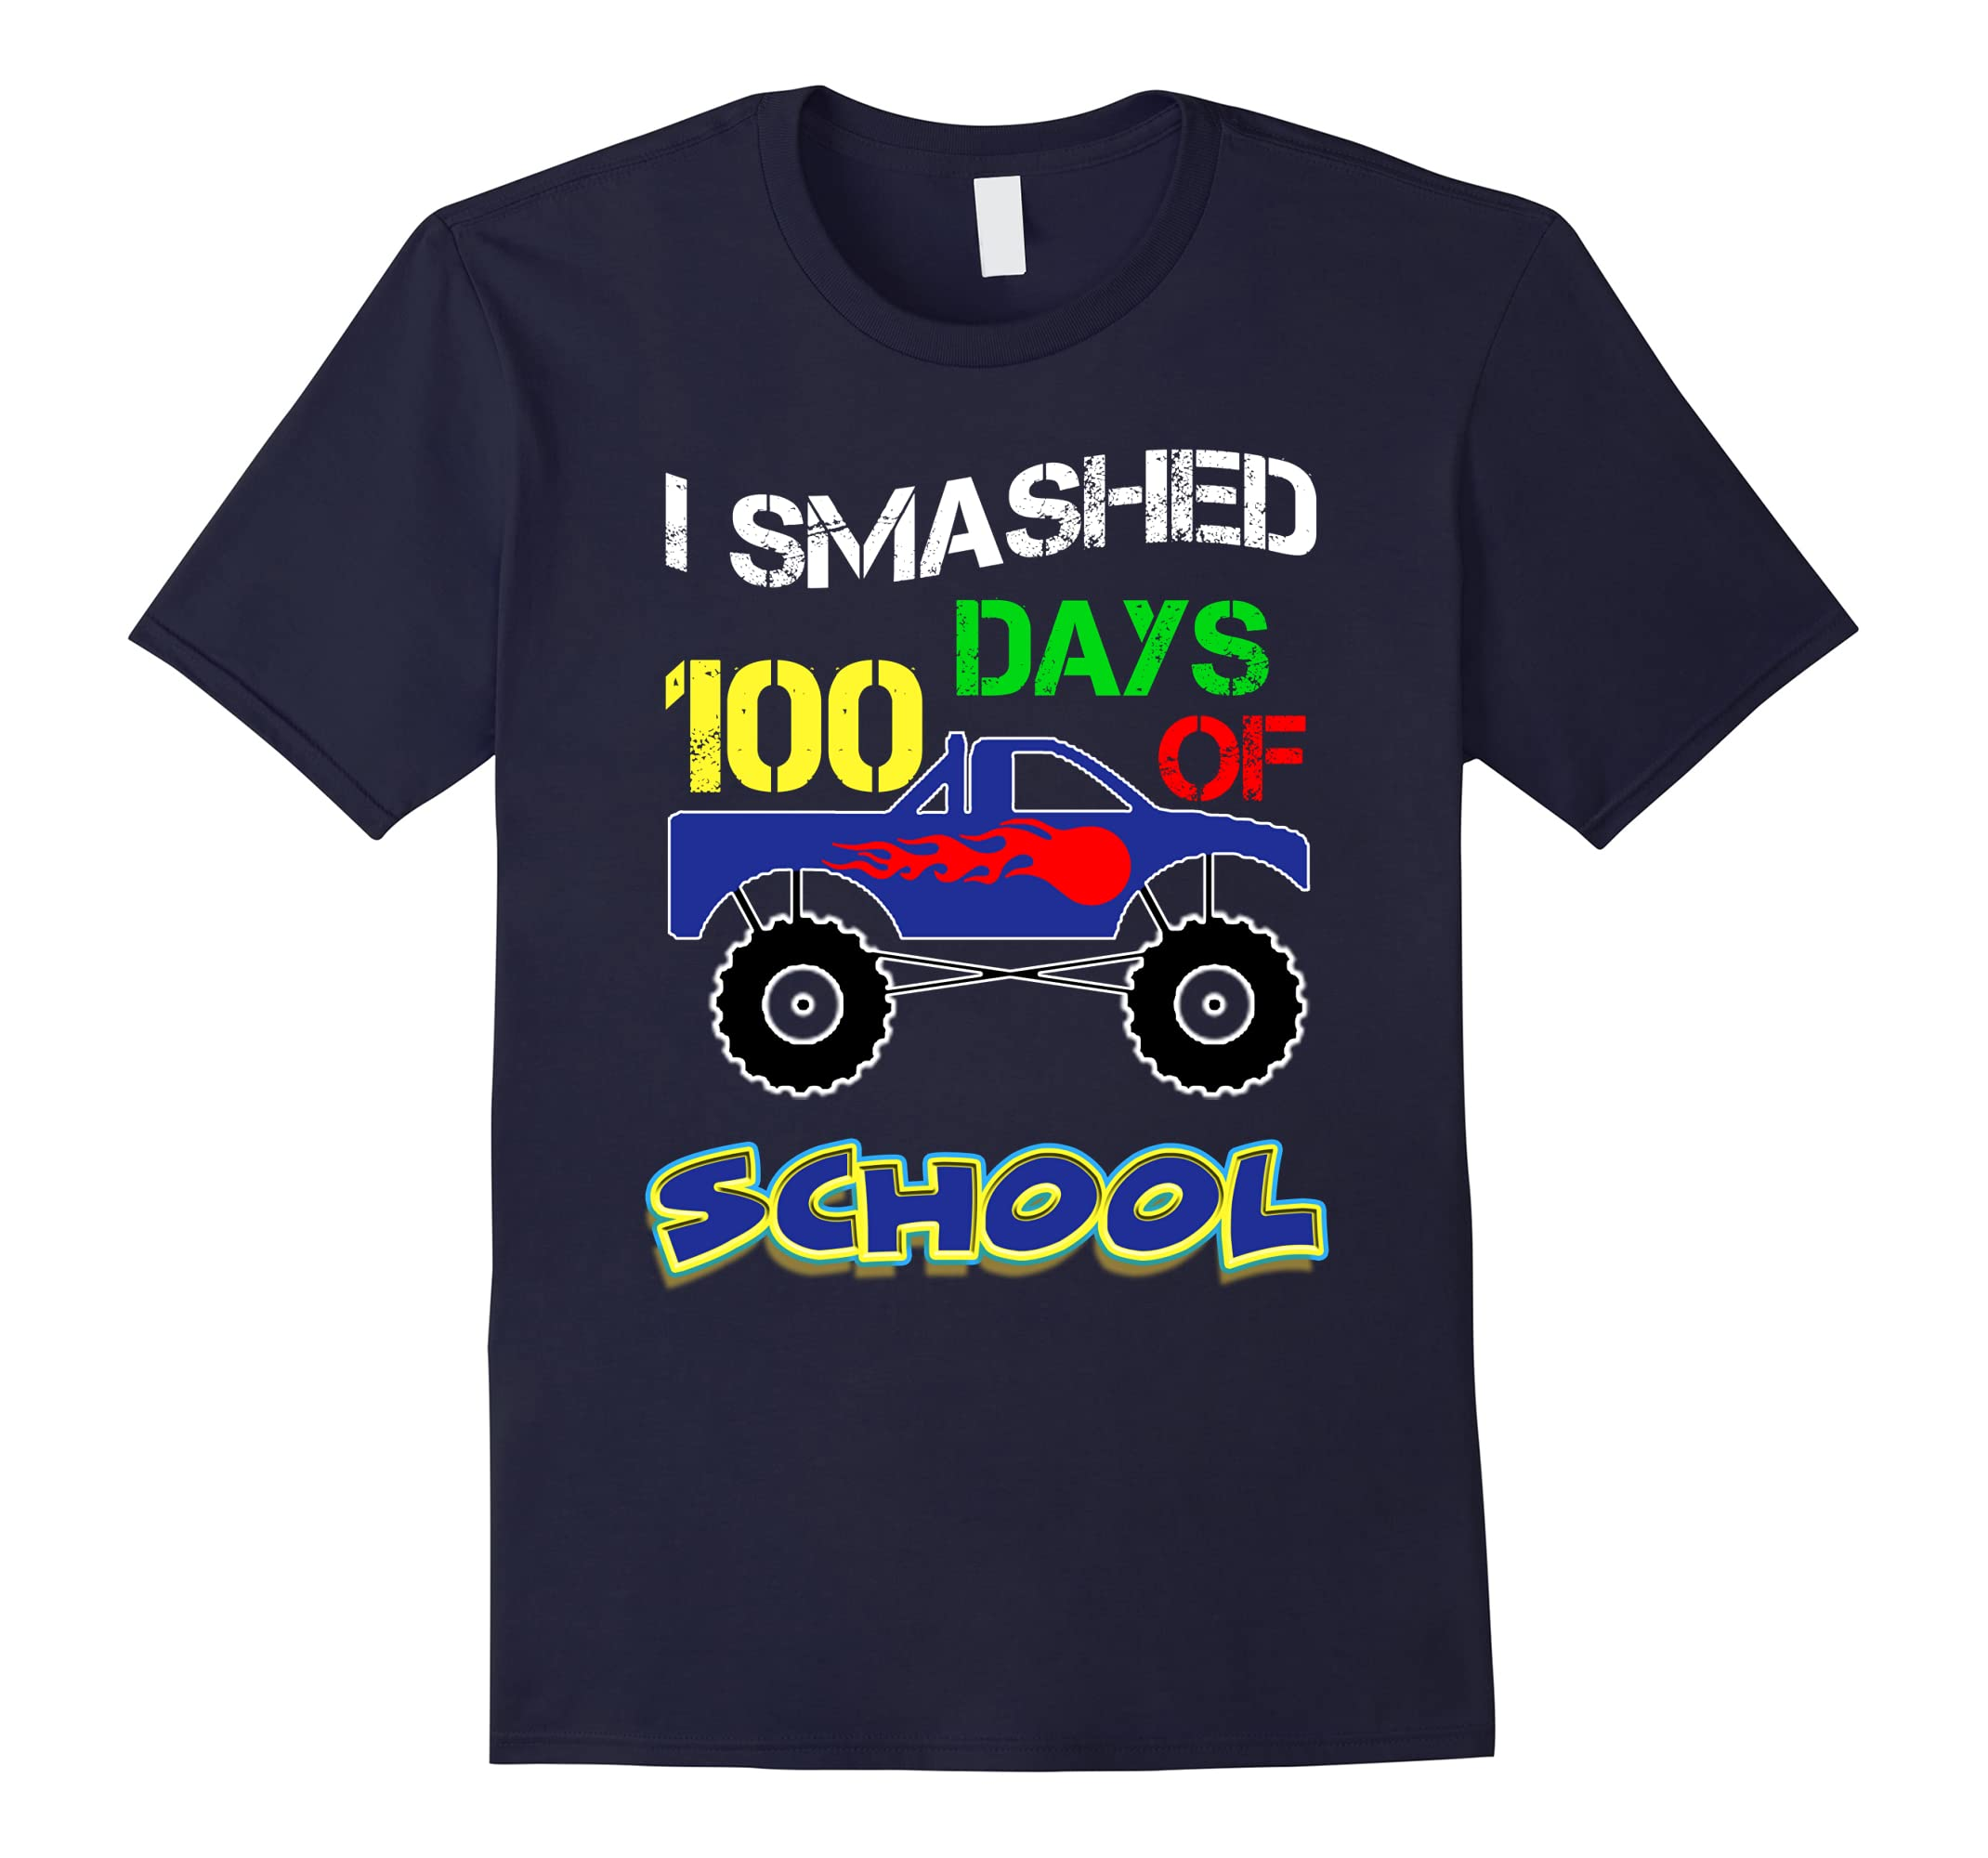 100th Day Of School Funny Shirt Kids Monster Truck Theme-ah my shirt one gift